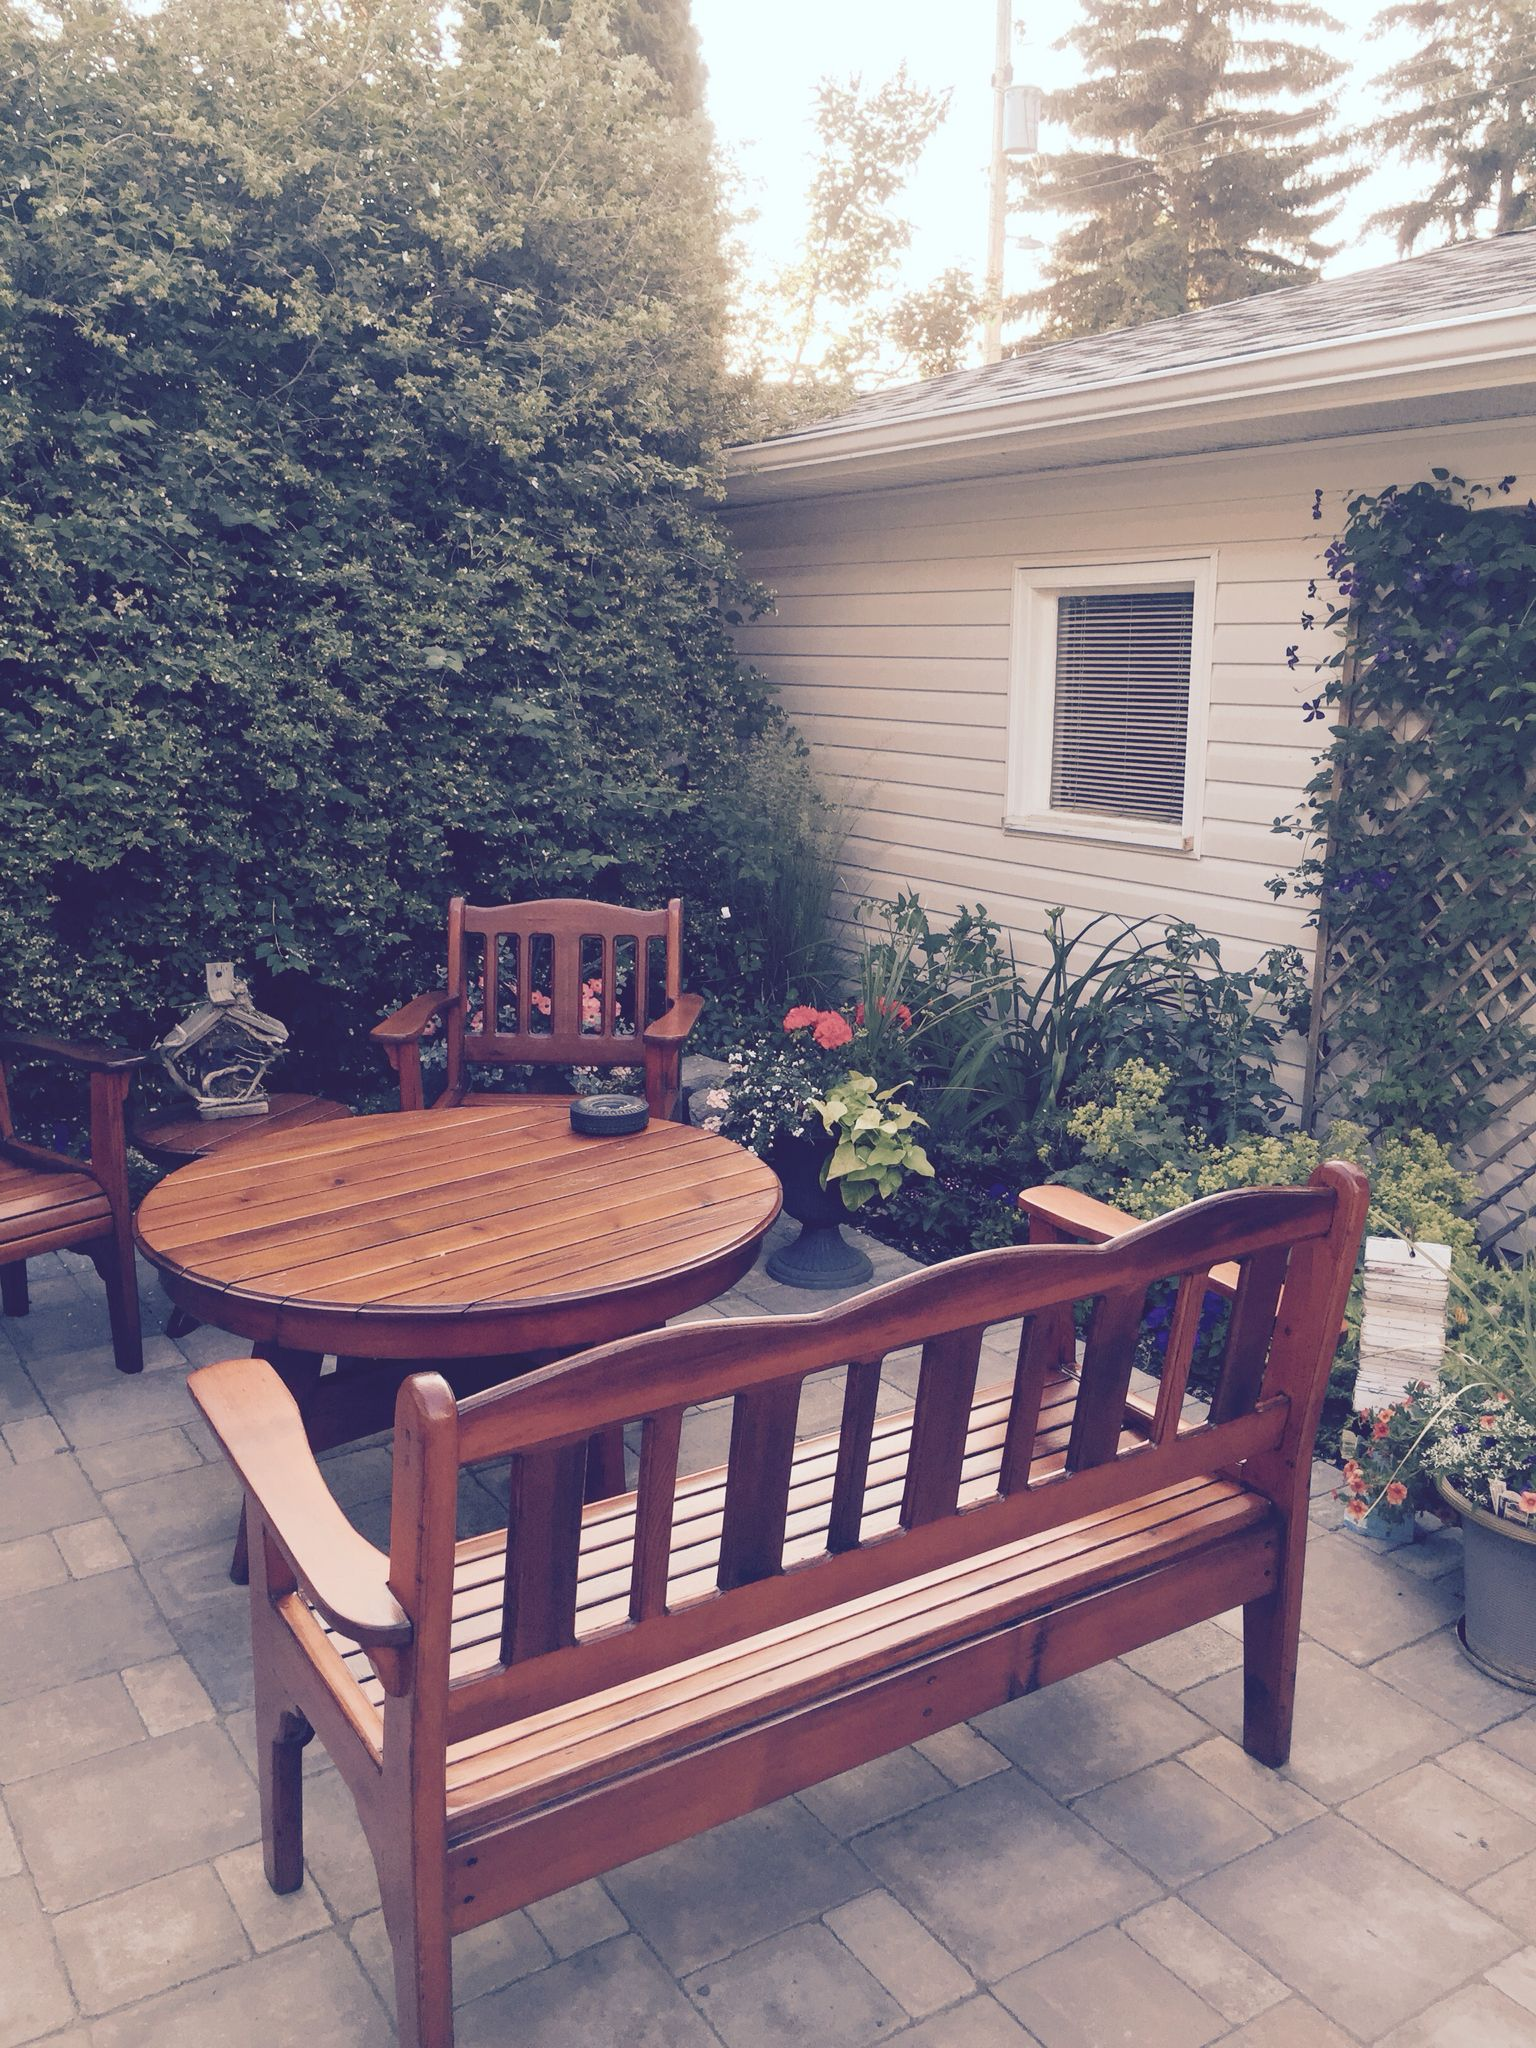 Back yard Edmonton  Outdoor decor, Backyard, Outdoor furniture